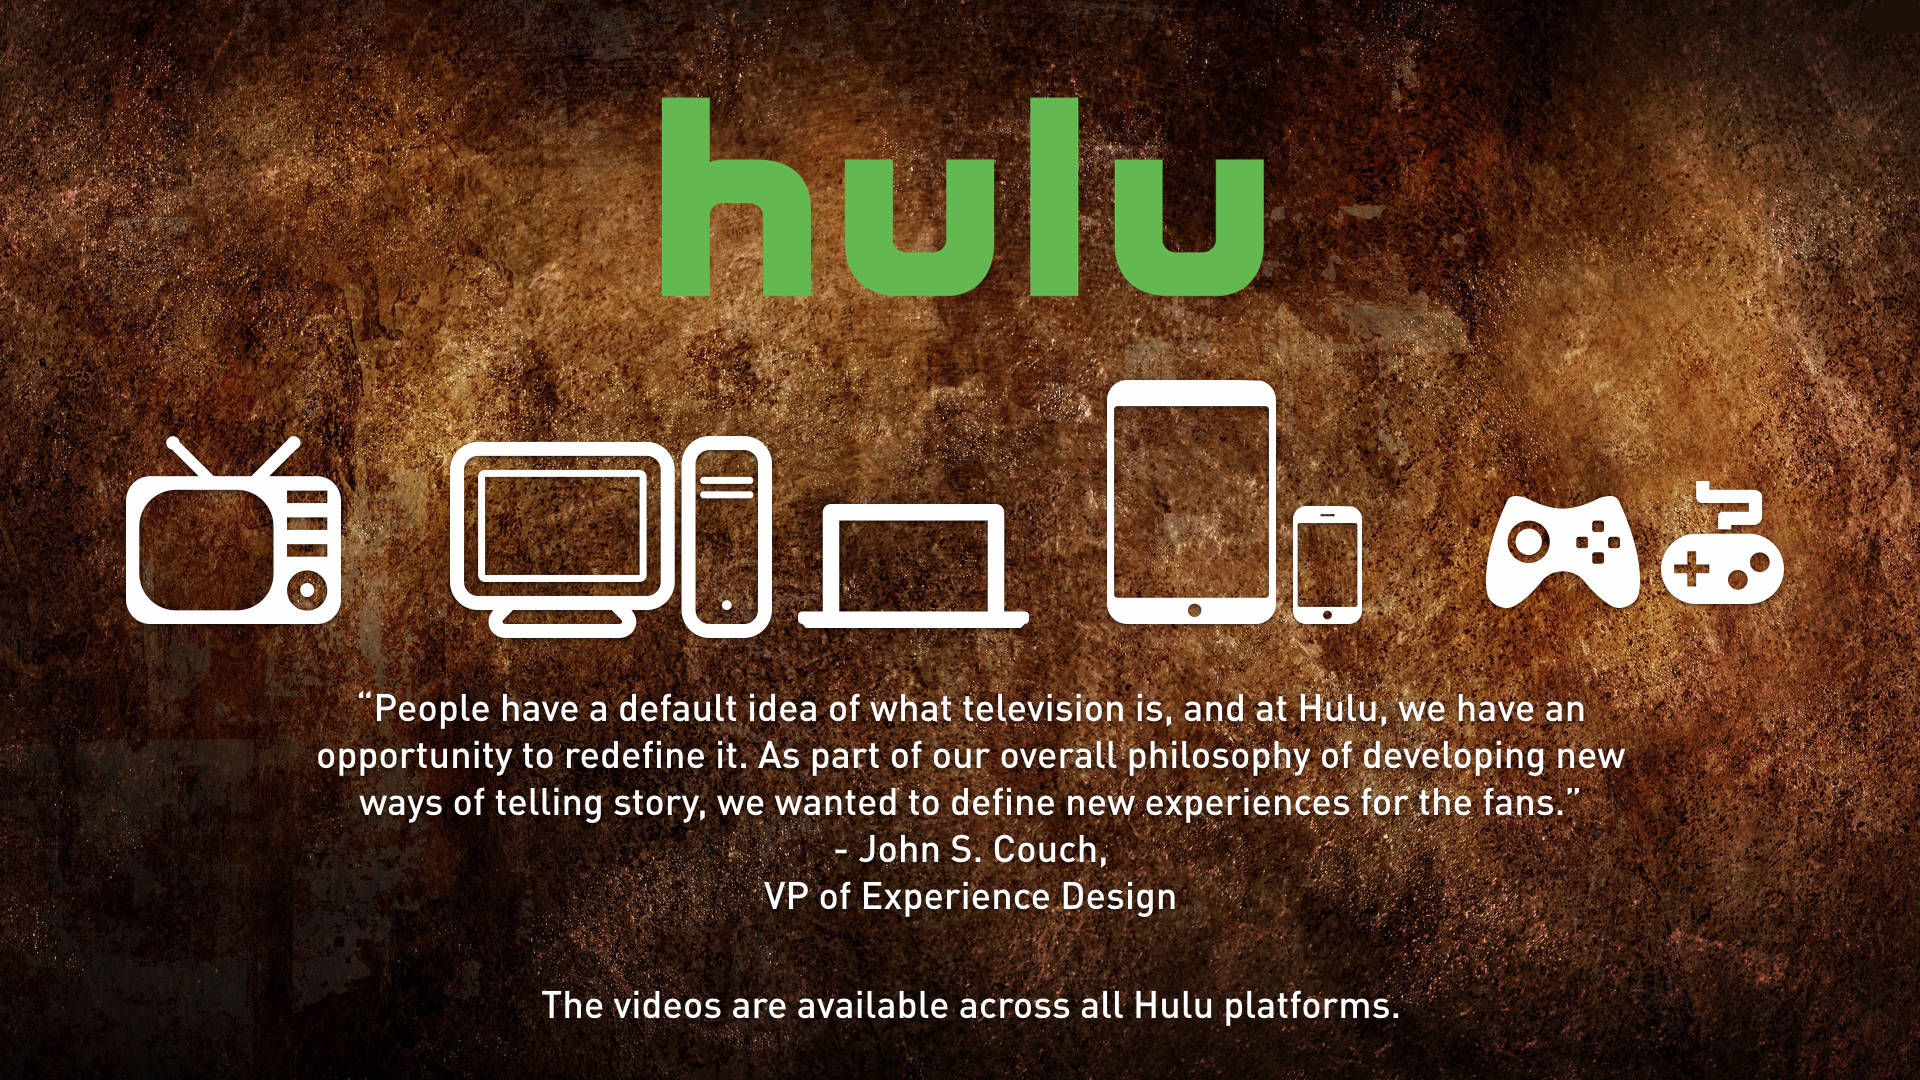 hulu scares up some fun with haunted screens videos for halloween